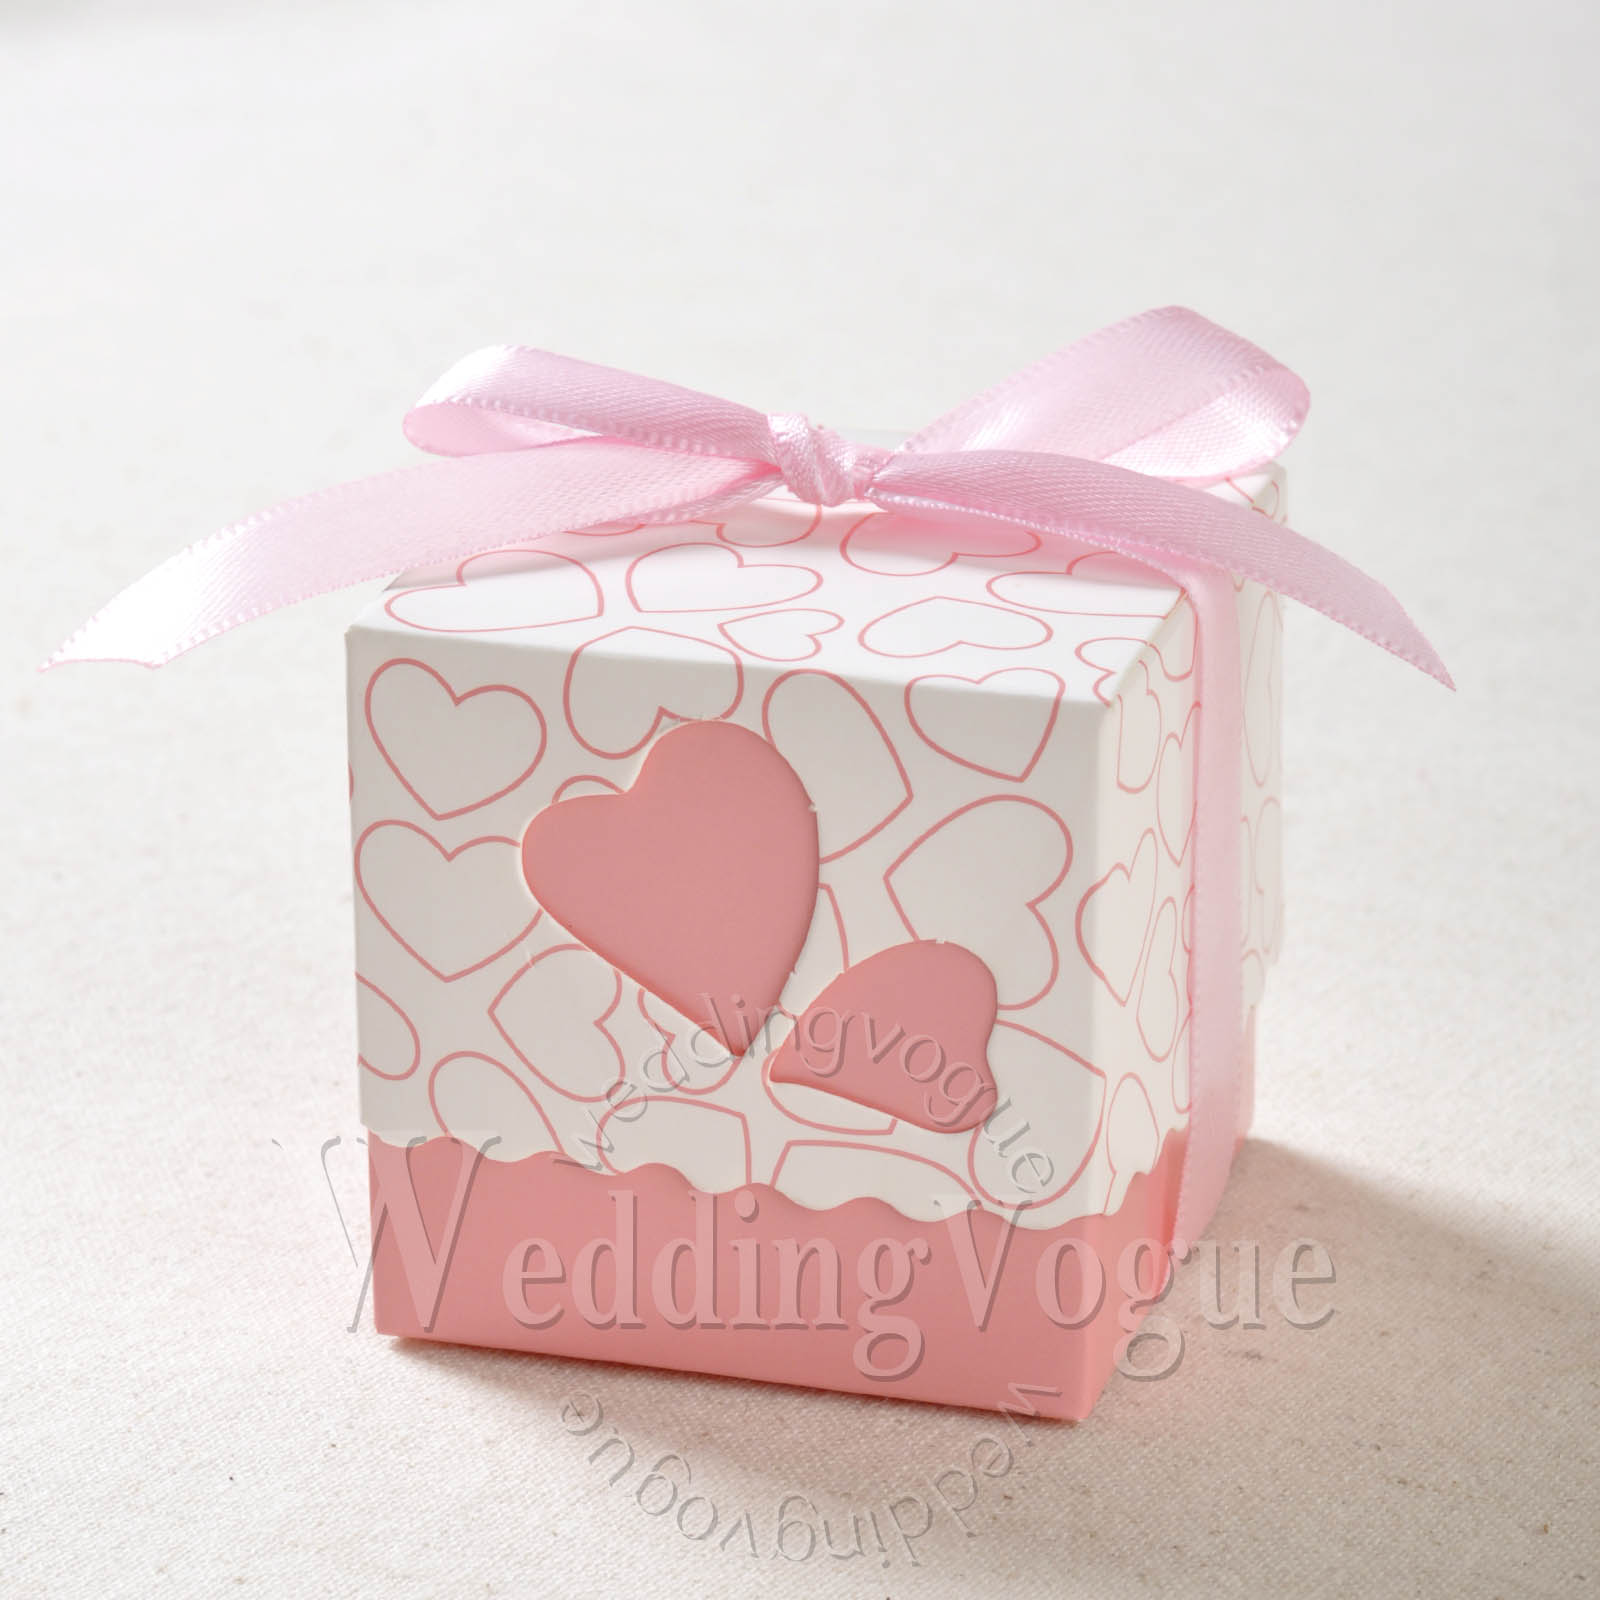 50 / 100 / 200pcs Heart-shaped Window Wedding Favor Gift Boxes ...